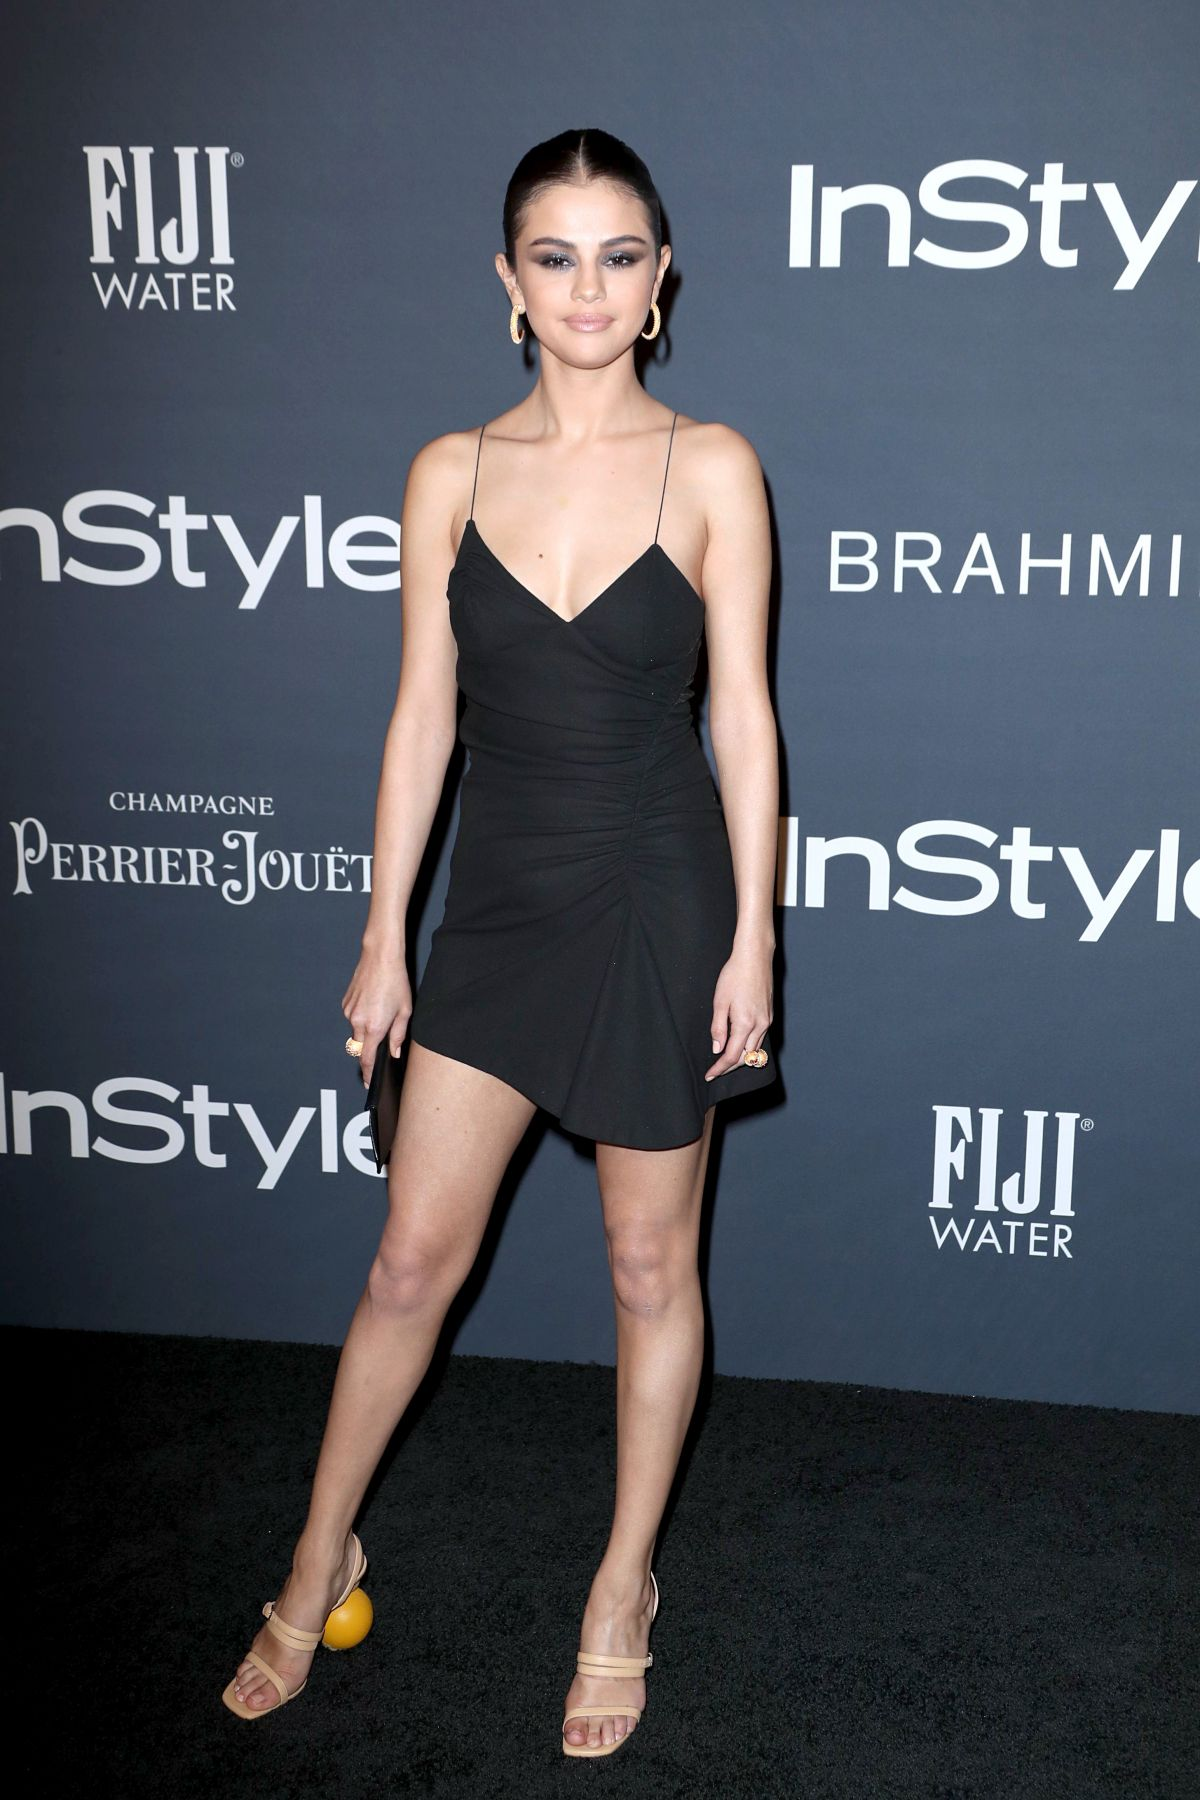 Selena Gomez At the 3rd Annual InStyle Awards in Los Angeles